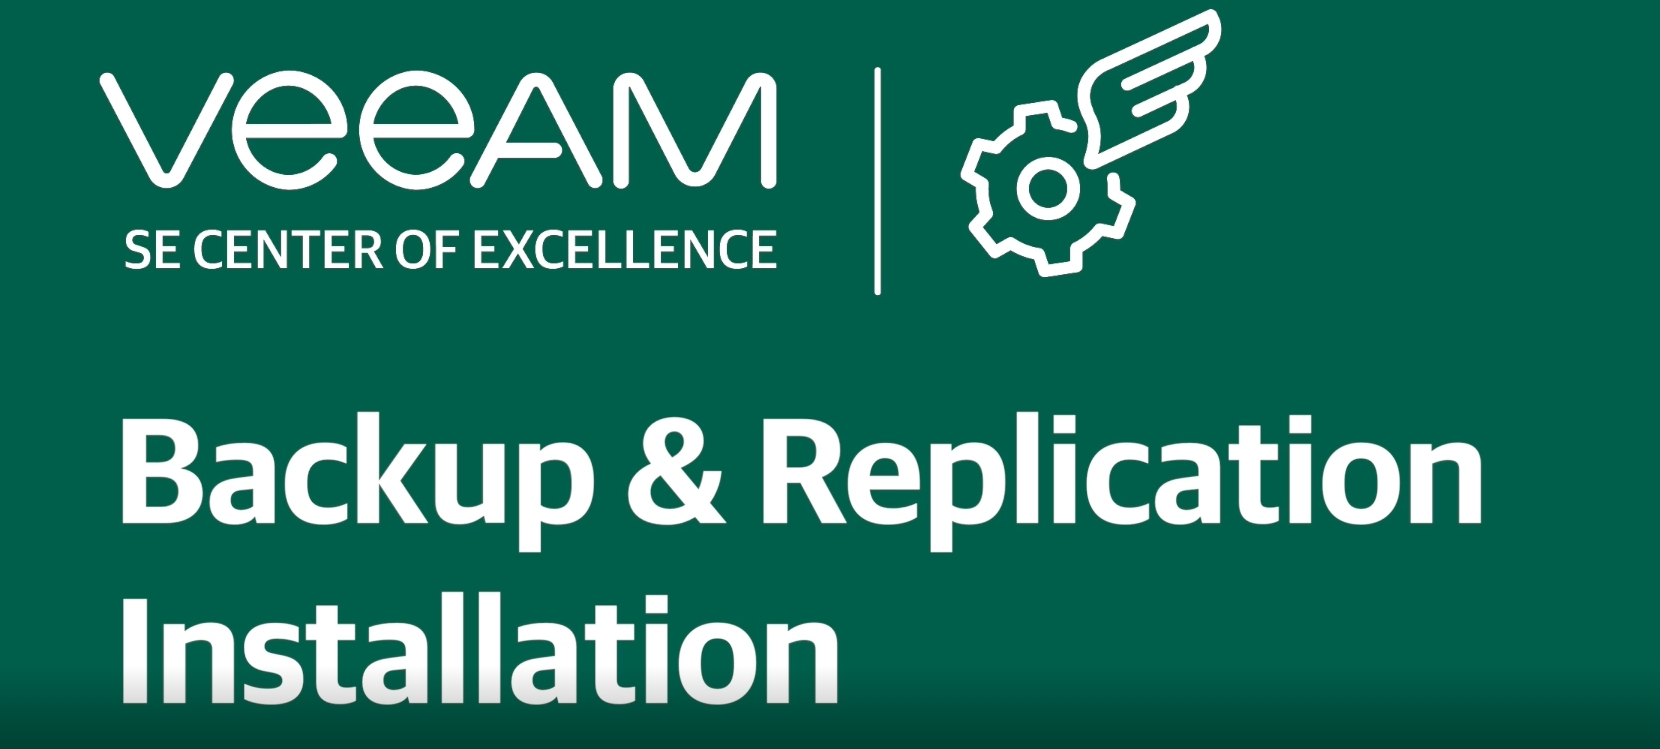 How to install Veeam Backup & Replication